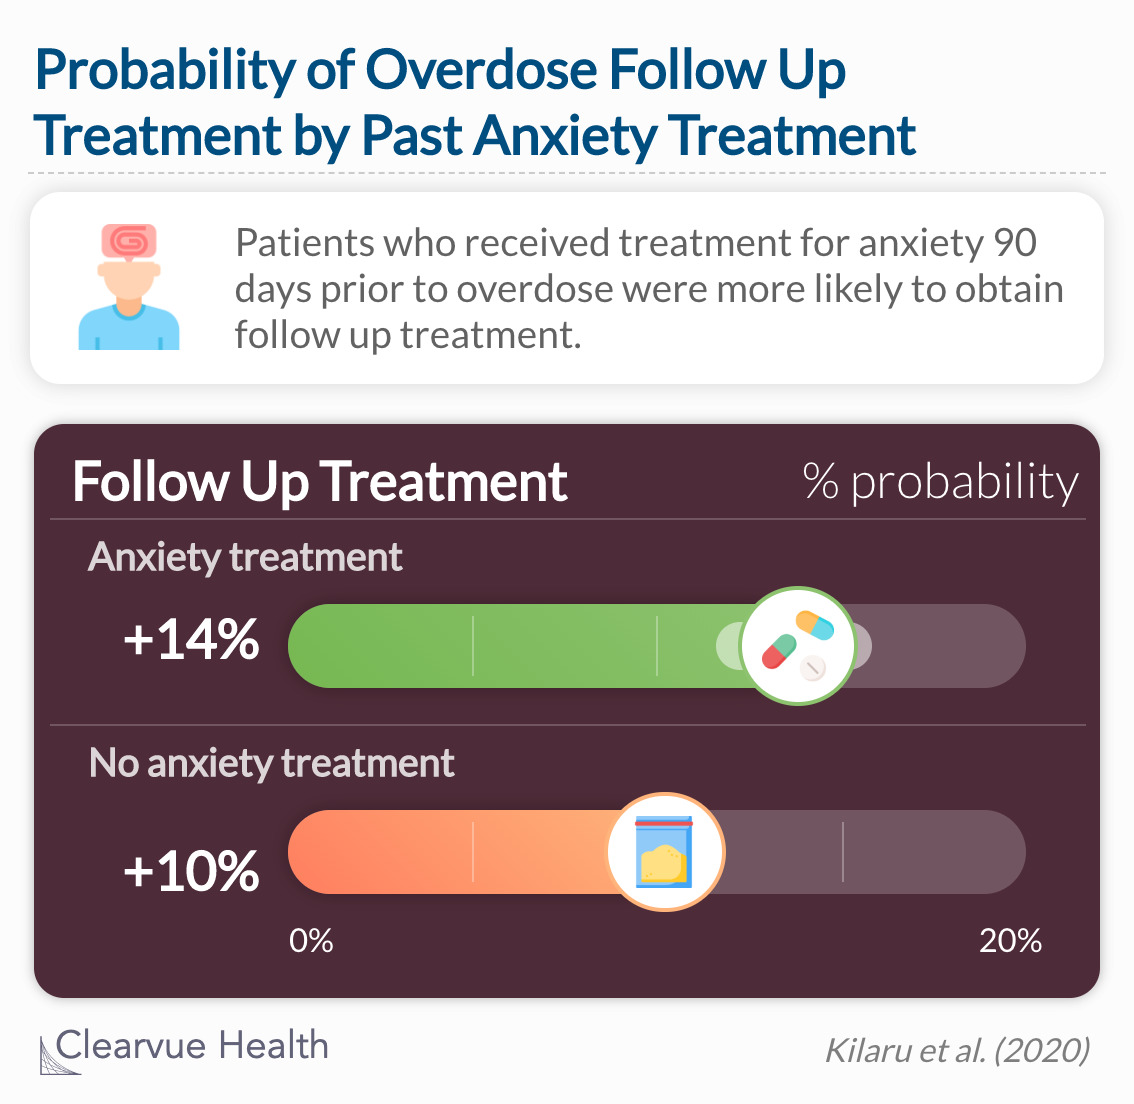 Patients with recent treatment for anxiety, including a treatment encounter for anxiety, were more likely to obtain follow-up.